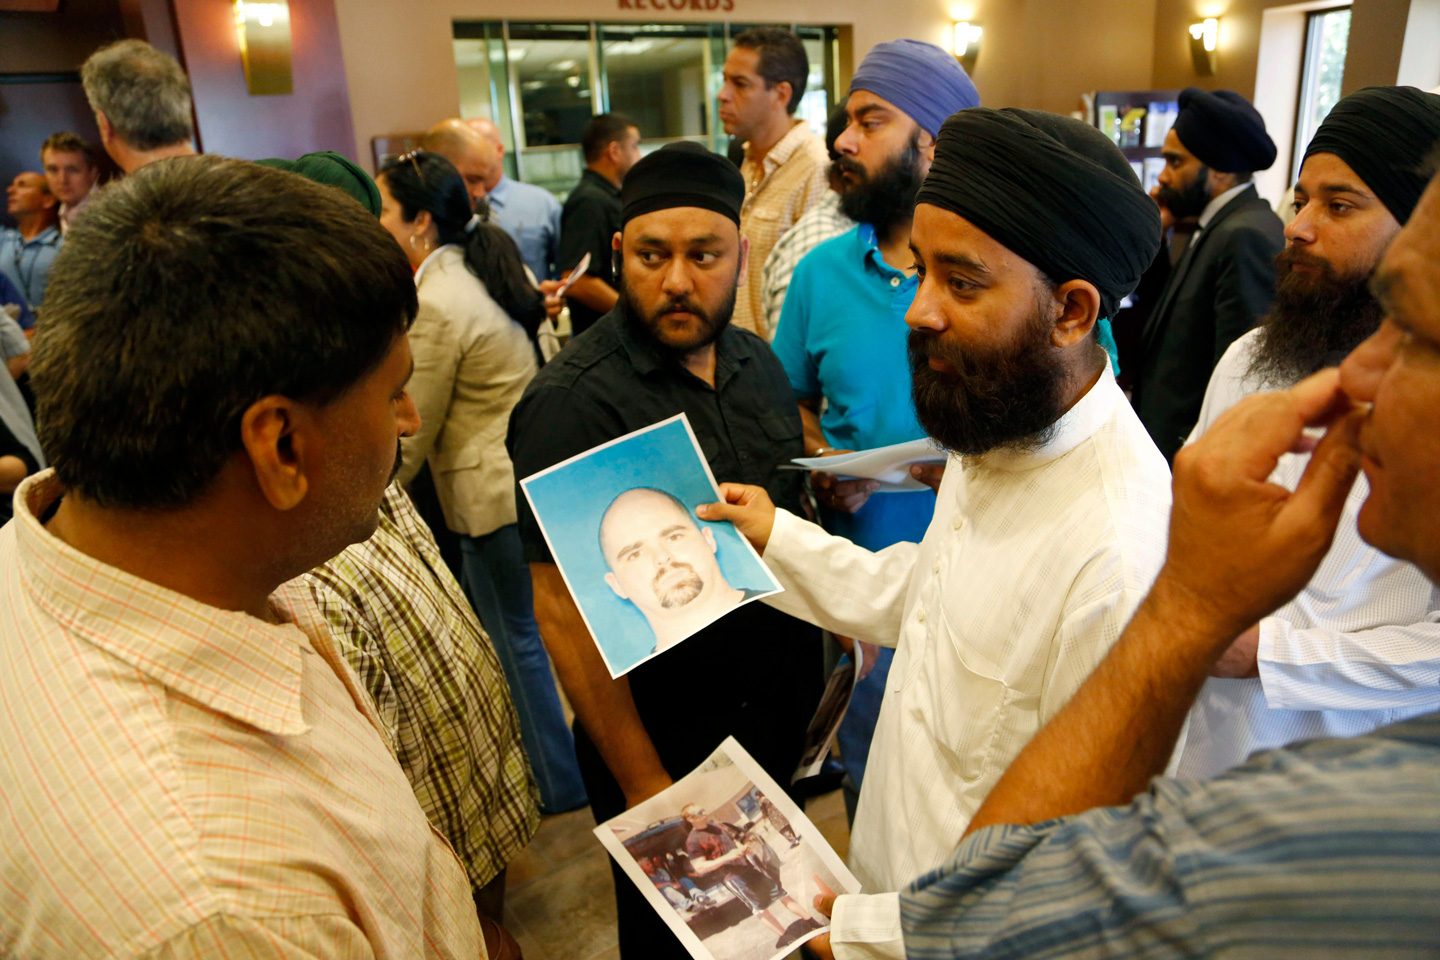 OAK CREEK, WI - AUGUST 6: Members of the community hold up the mug shot handed out by the FBI of the suspected shooter Wade Michael Page after a press conference on the shooting at the Sikh Temple of Wisconsin where yesterday a gunman fired upon people at service August, 6, 2012 in Oak Creek, Wisconsin. At least six people were killed when the shooter identified as Wade Michael Page opened fire on congregants in the Milwaukee suburb. The suspect who was a United States Army veteran was killed in a shootout with  police.  (Photo by Darren Hauck/Getty Images)